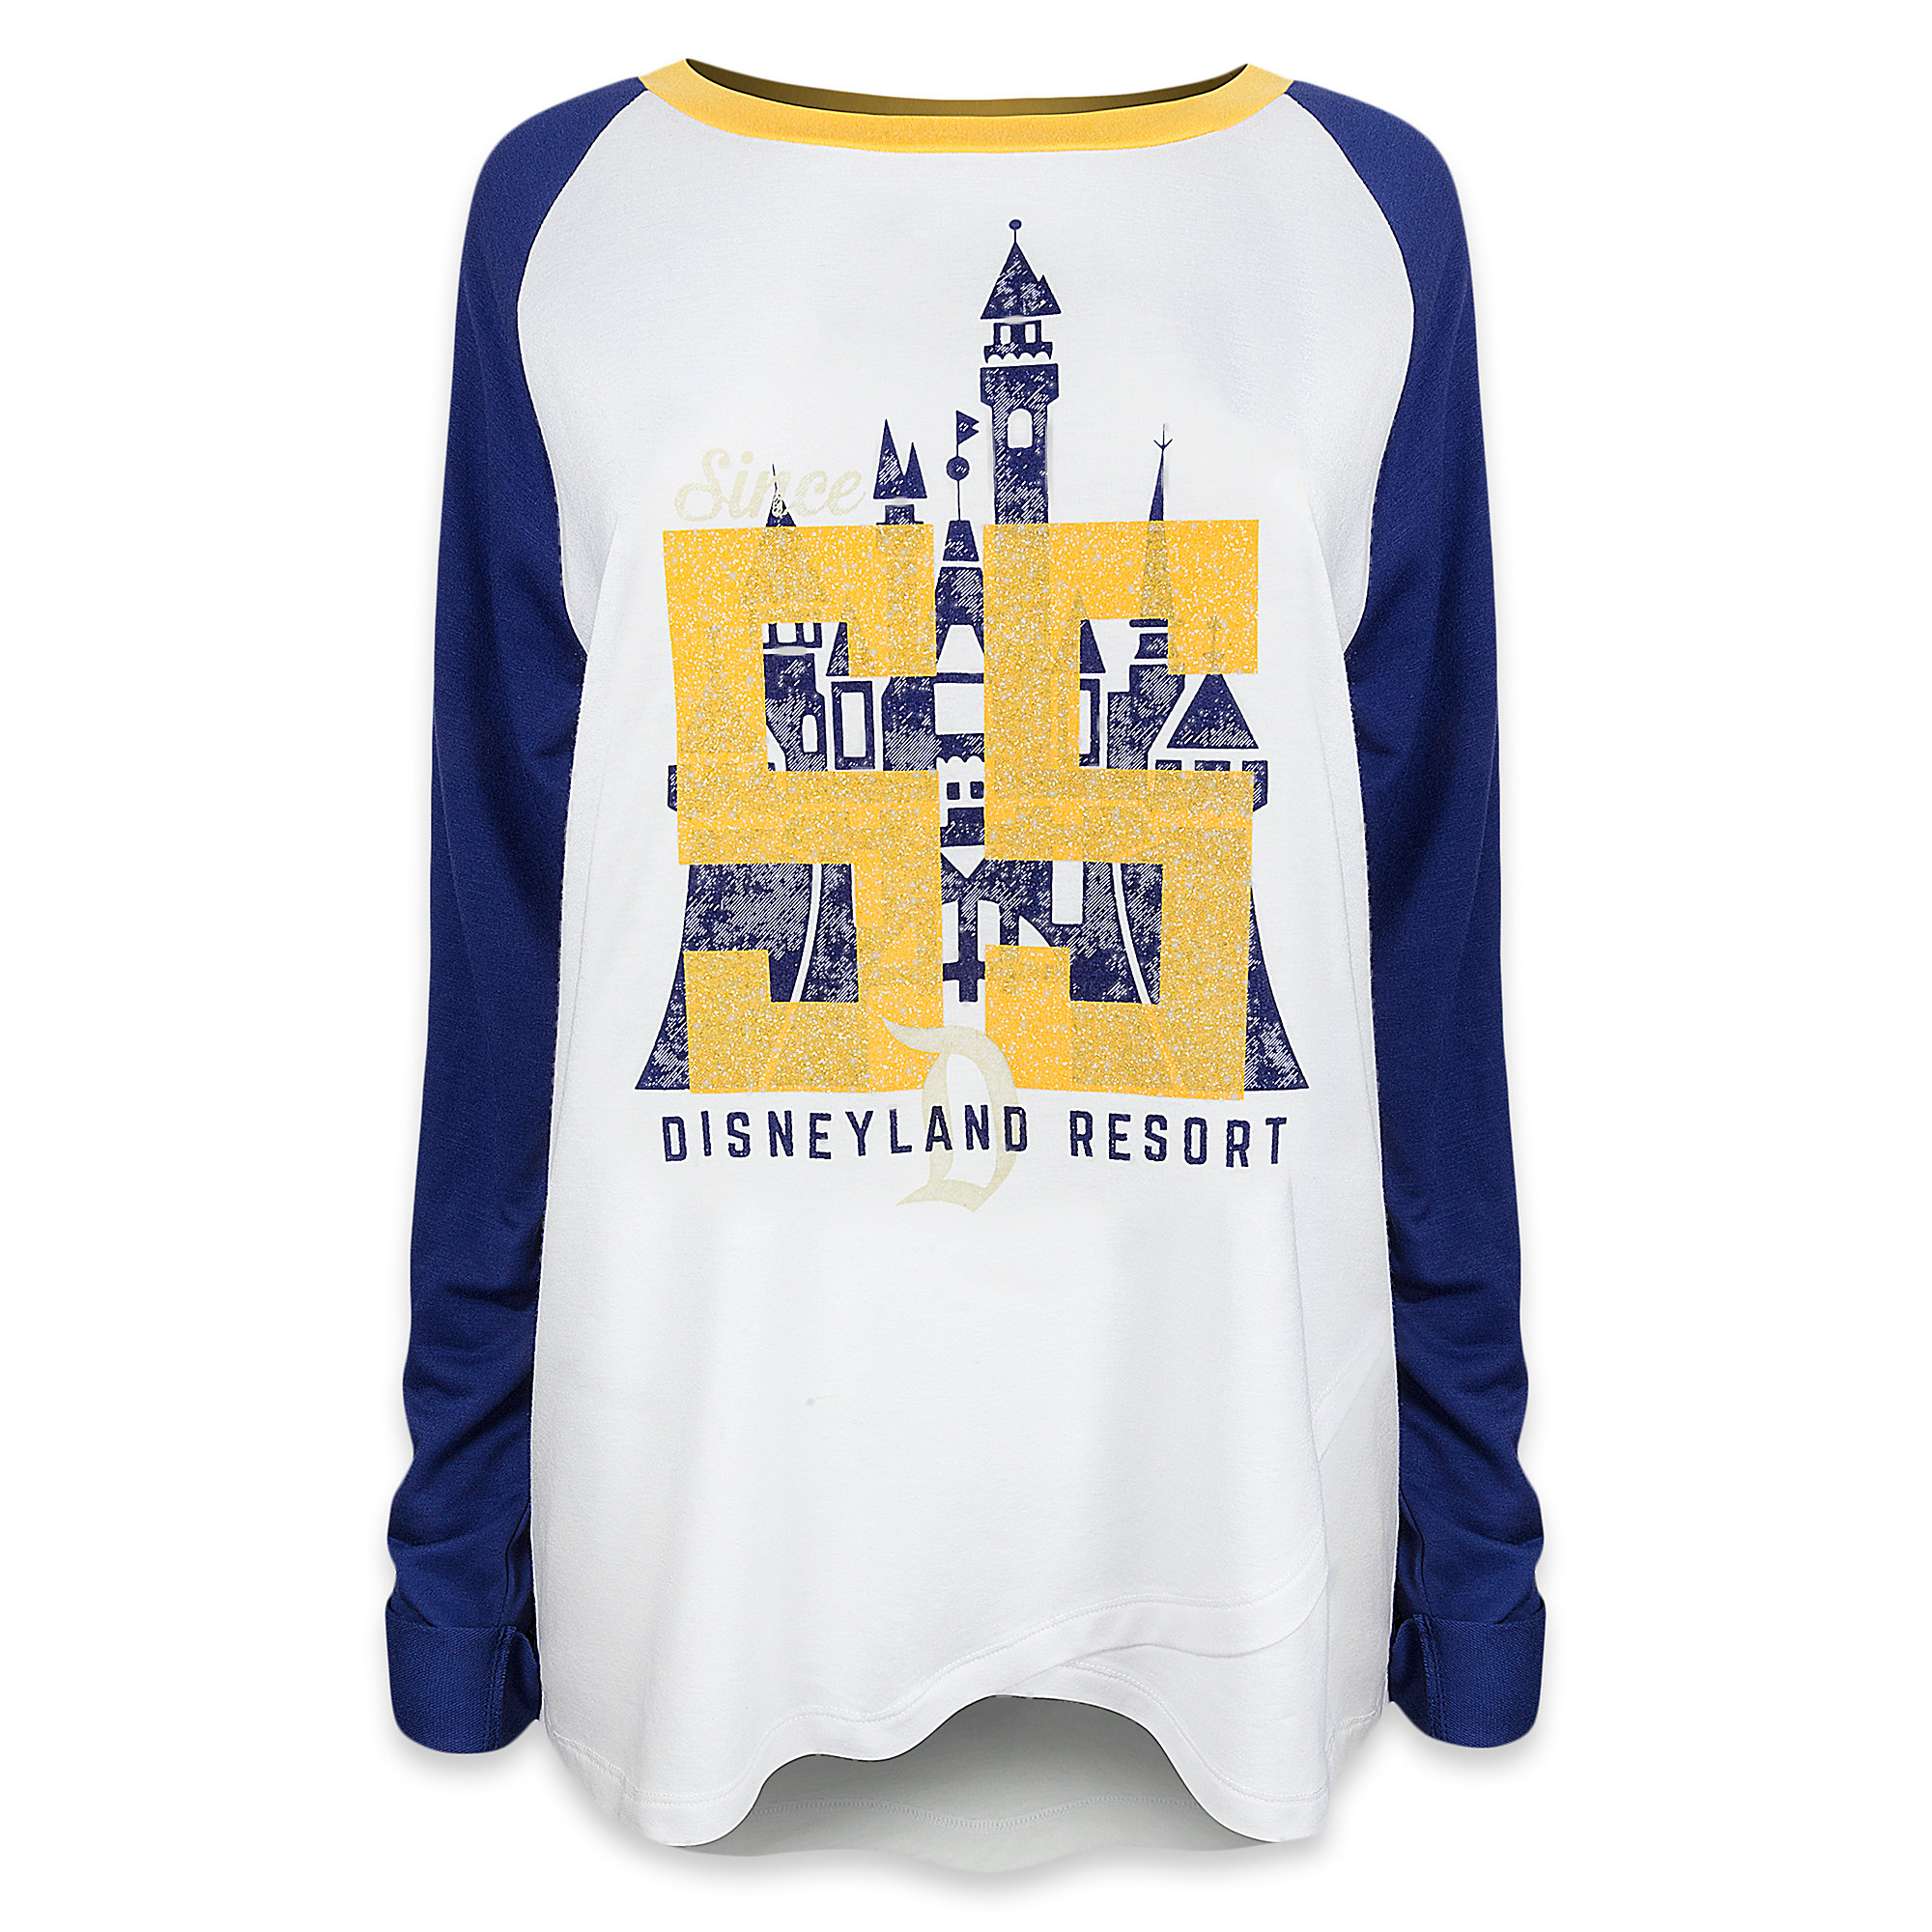 Disneyland Collegiate Raglan Top - Women